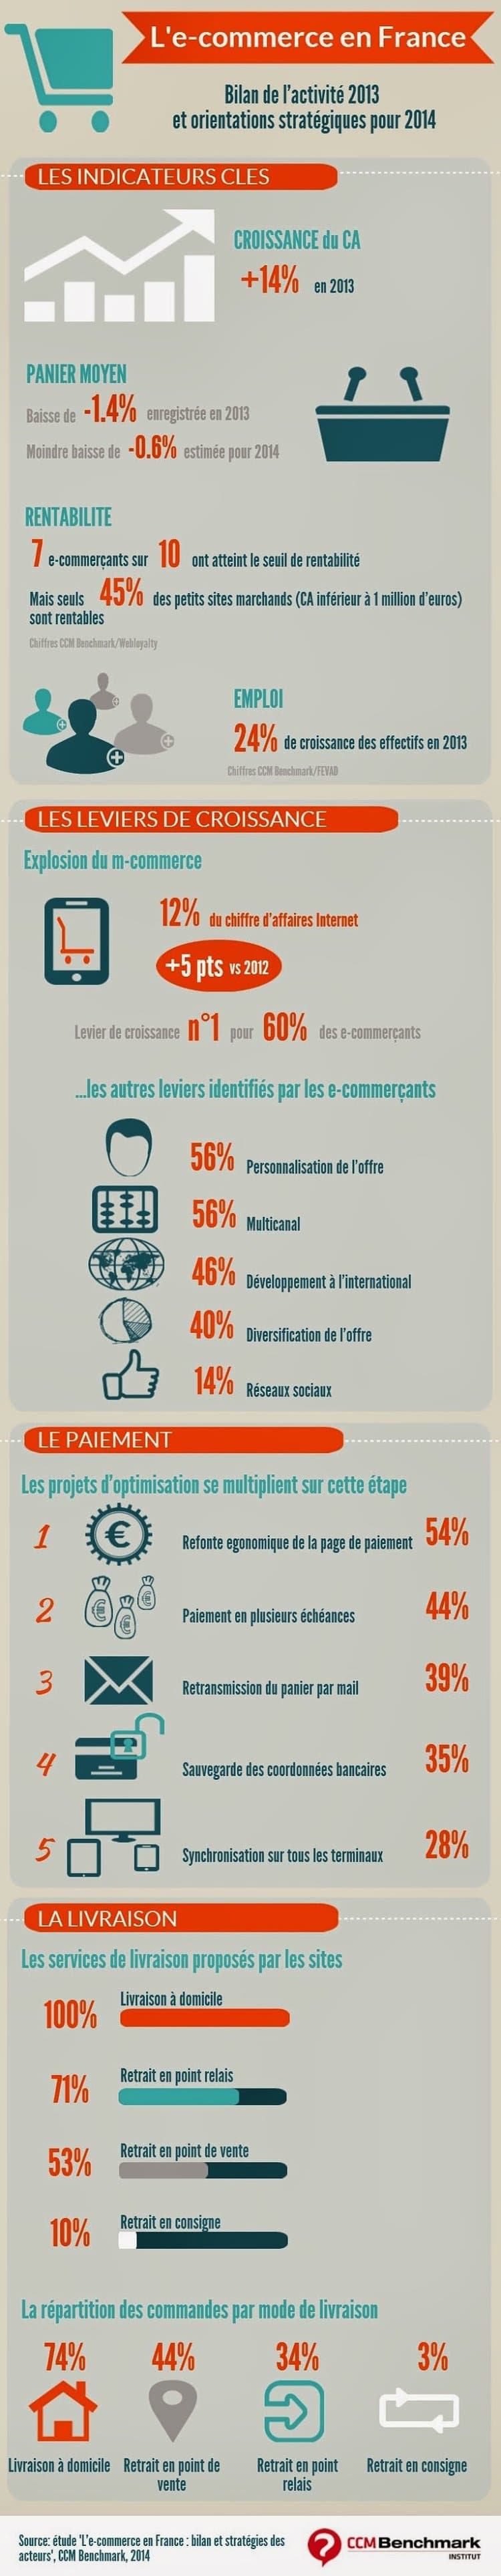 infographie-ecommerce-france